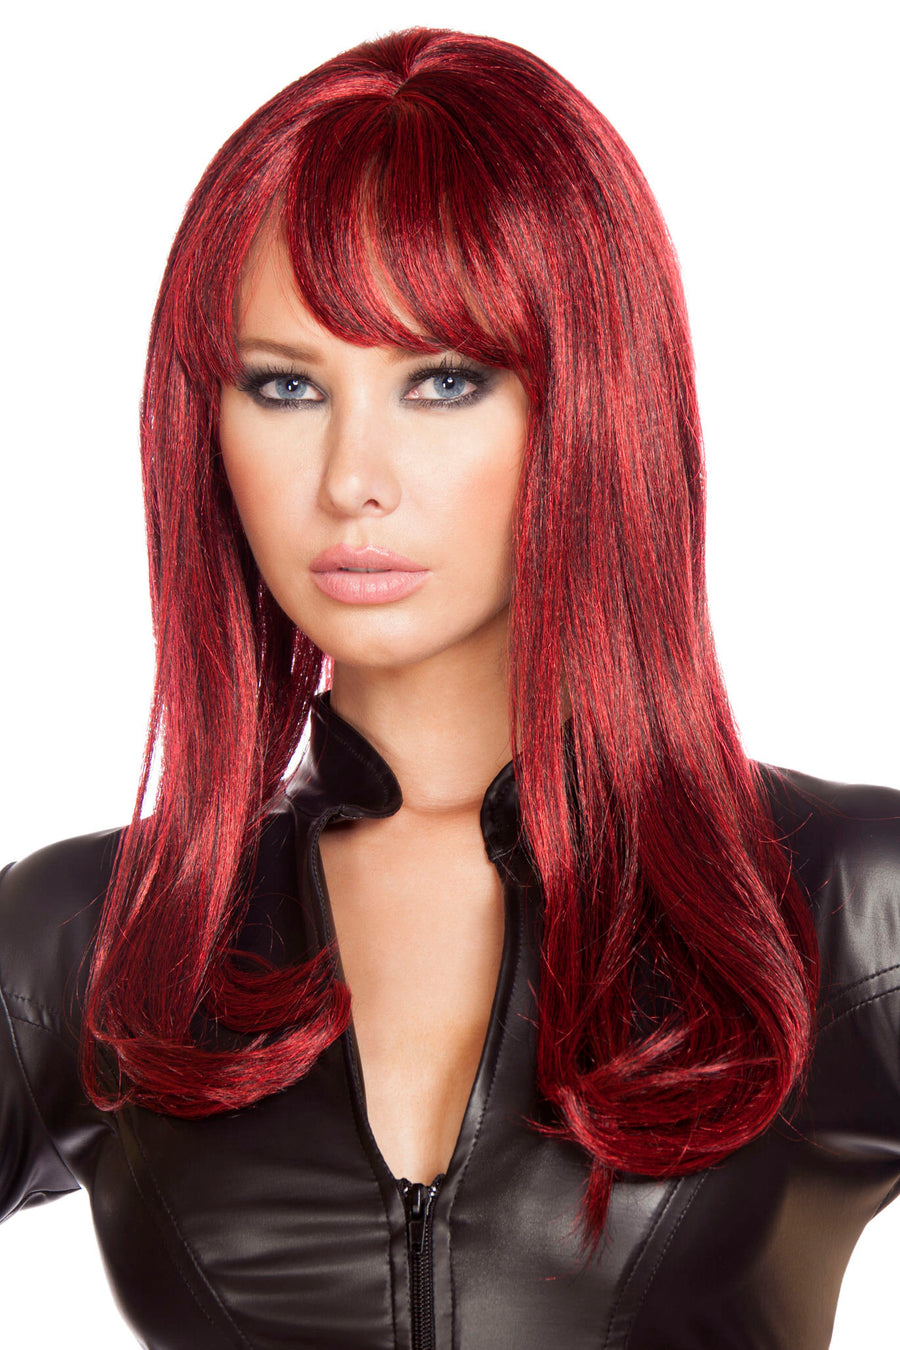 Burgundy Wig - Roma Costume, Costume Add-on - YourLamode